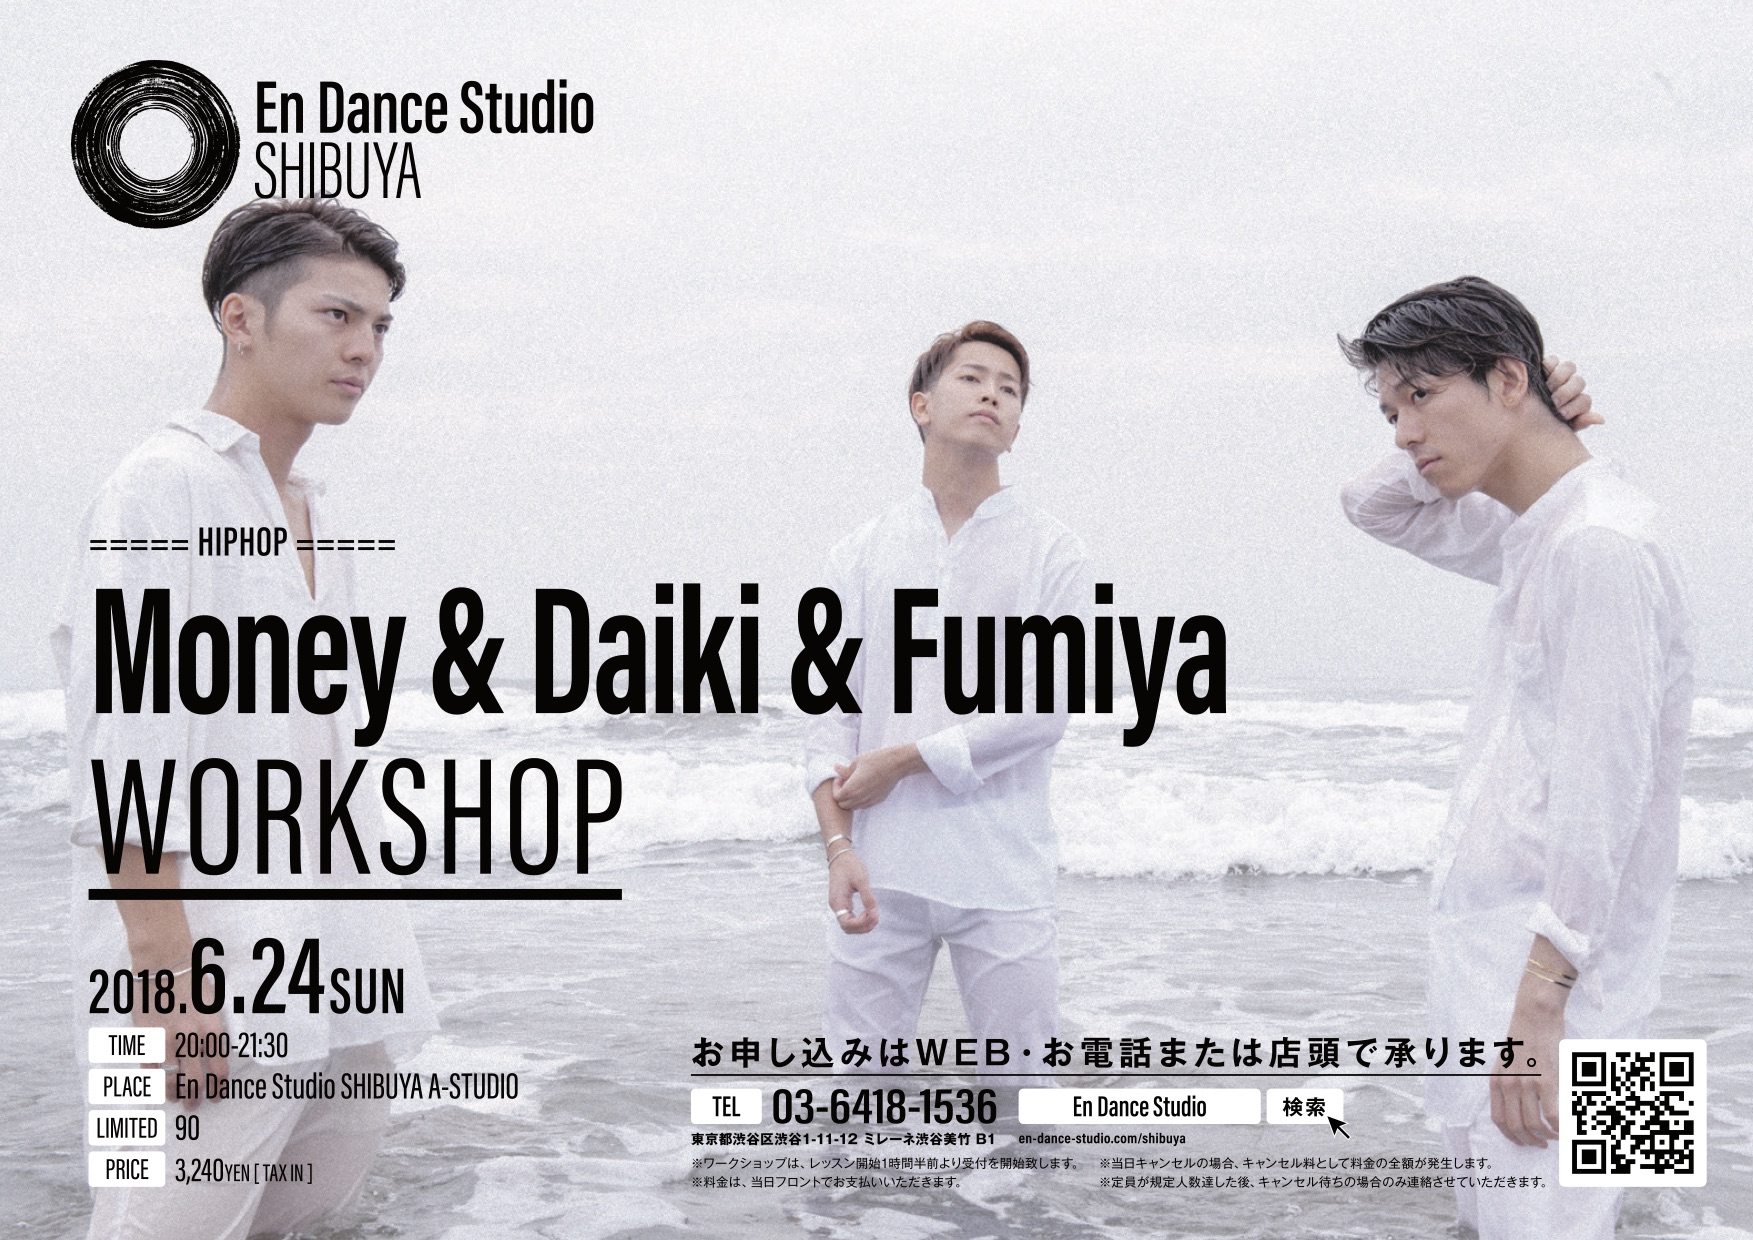 Be114 Money & Daiki & Fumiya